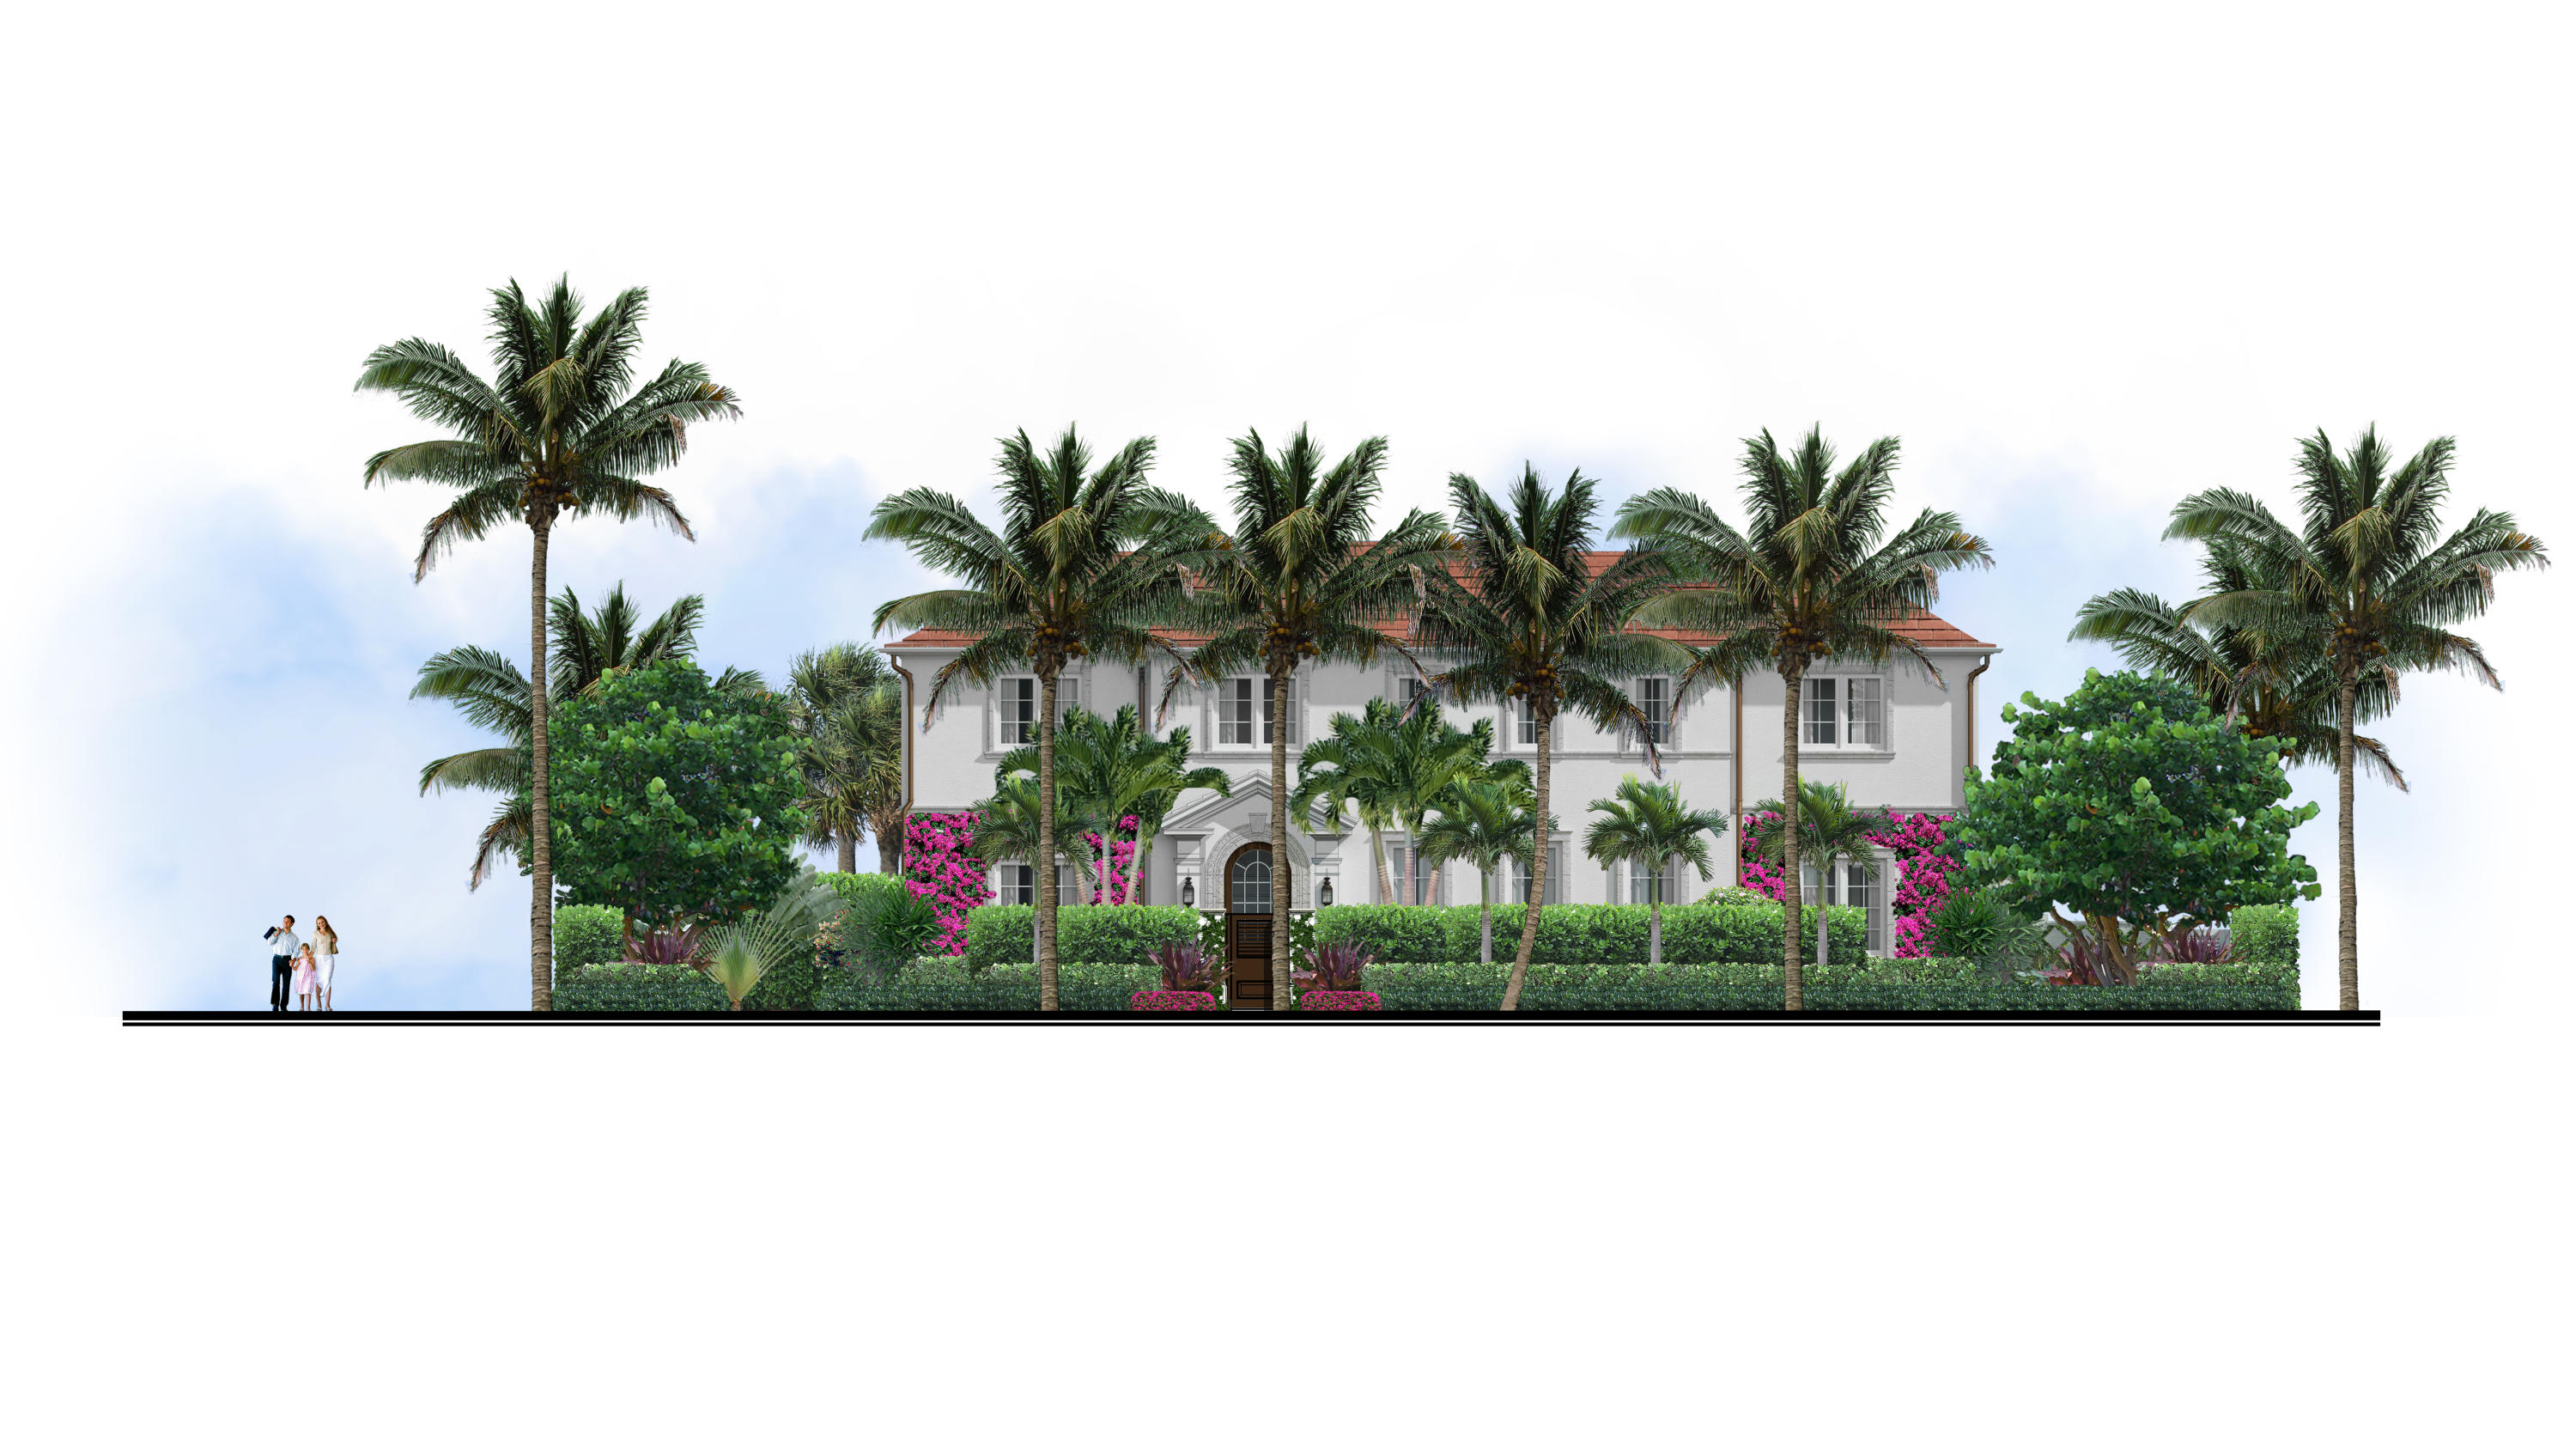 New Home for sale at 101 Gulfstream Road in Palm Beach